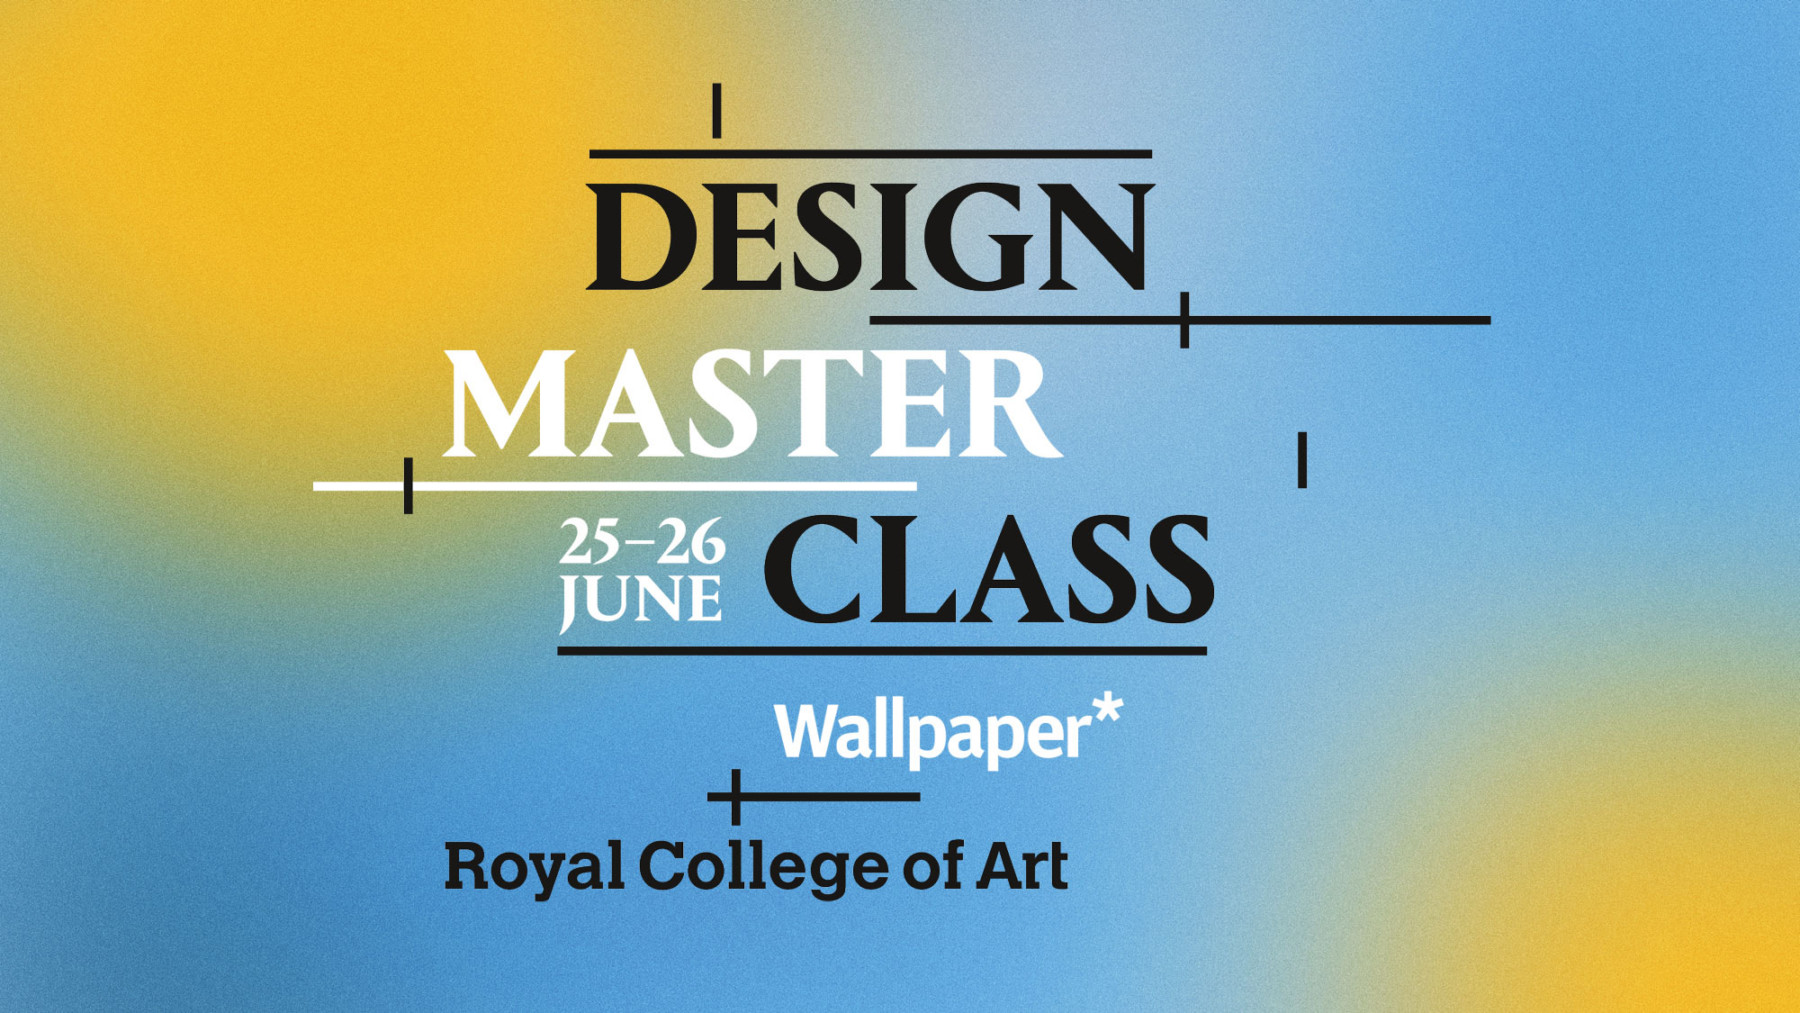 Jamie-fobert-architects-architect-design-masterclass-royal-college-of-art-wallpaper-workshop-lecture